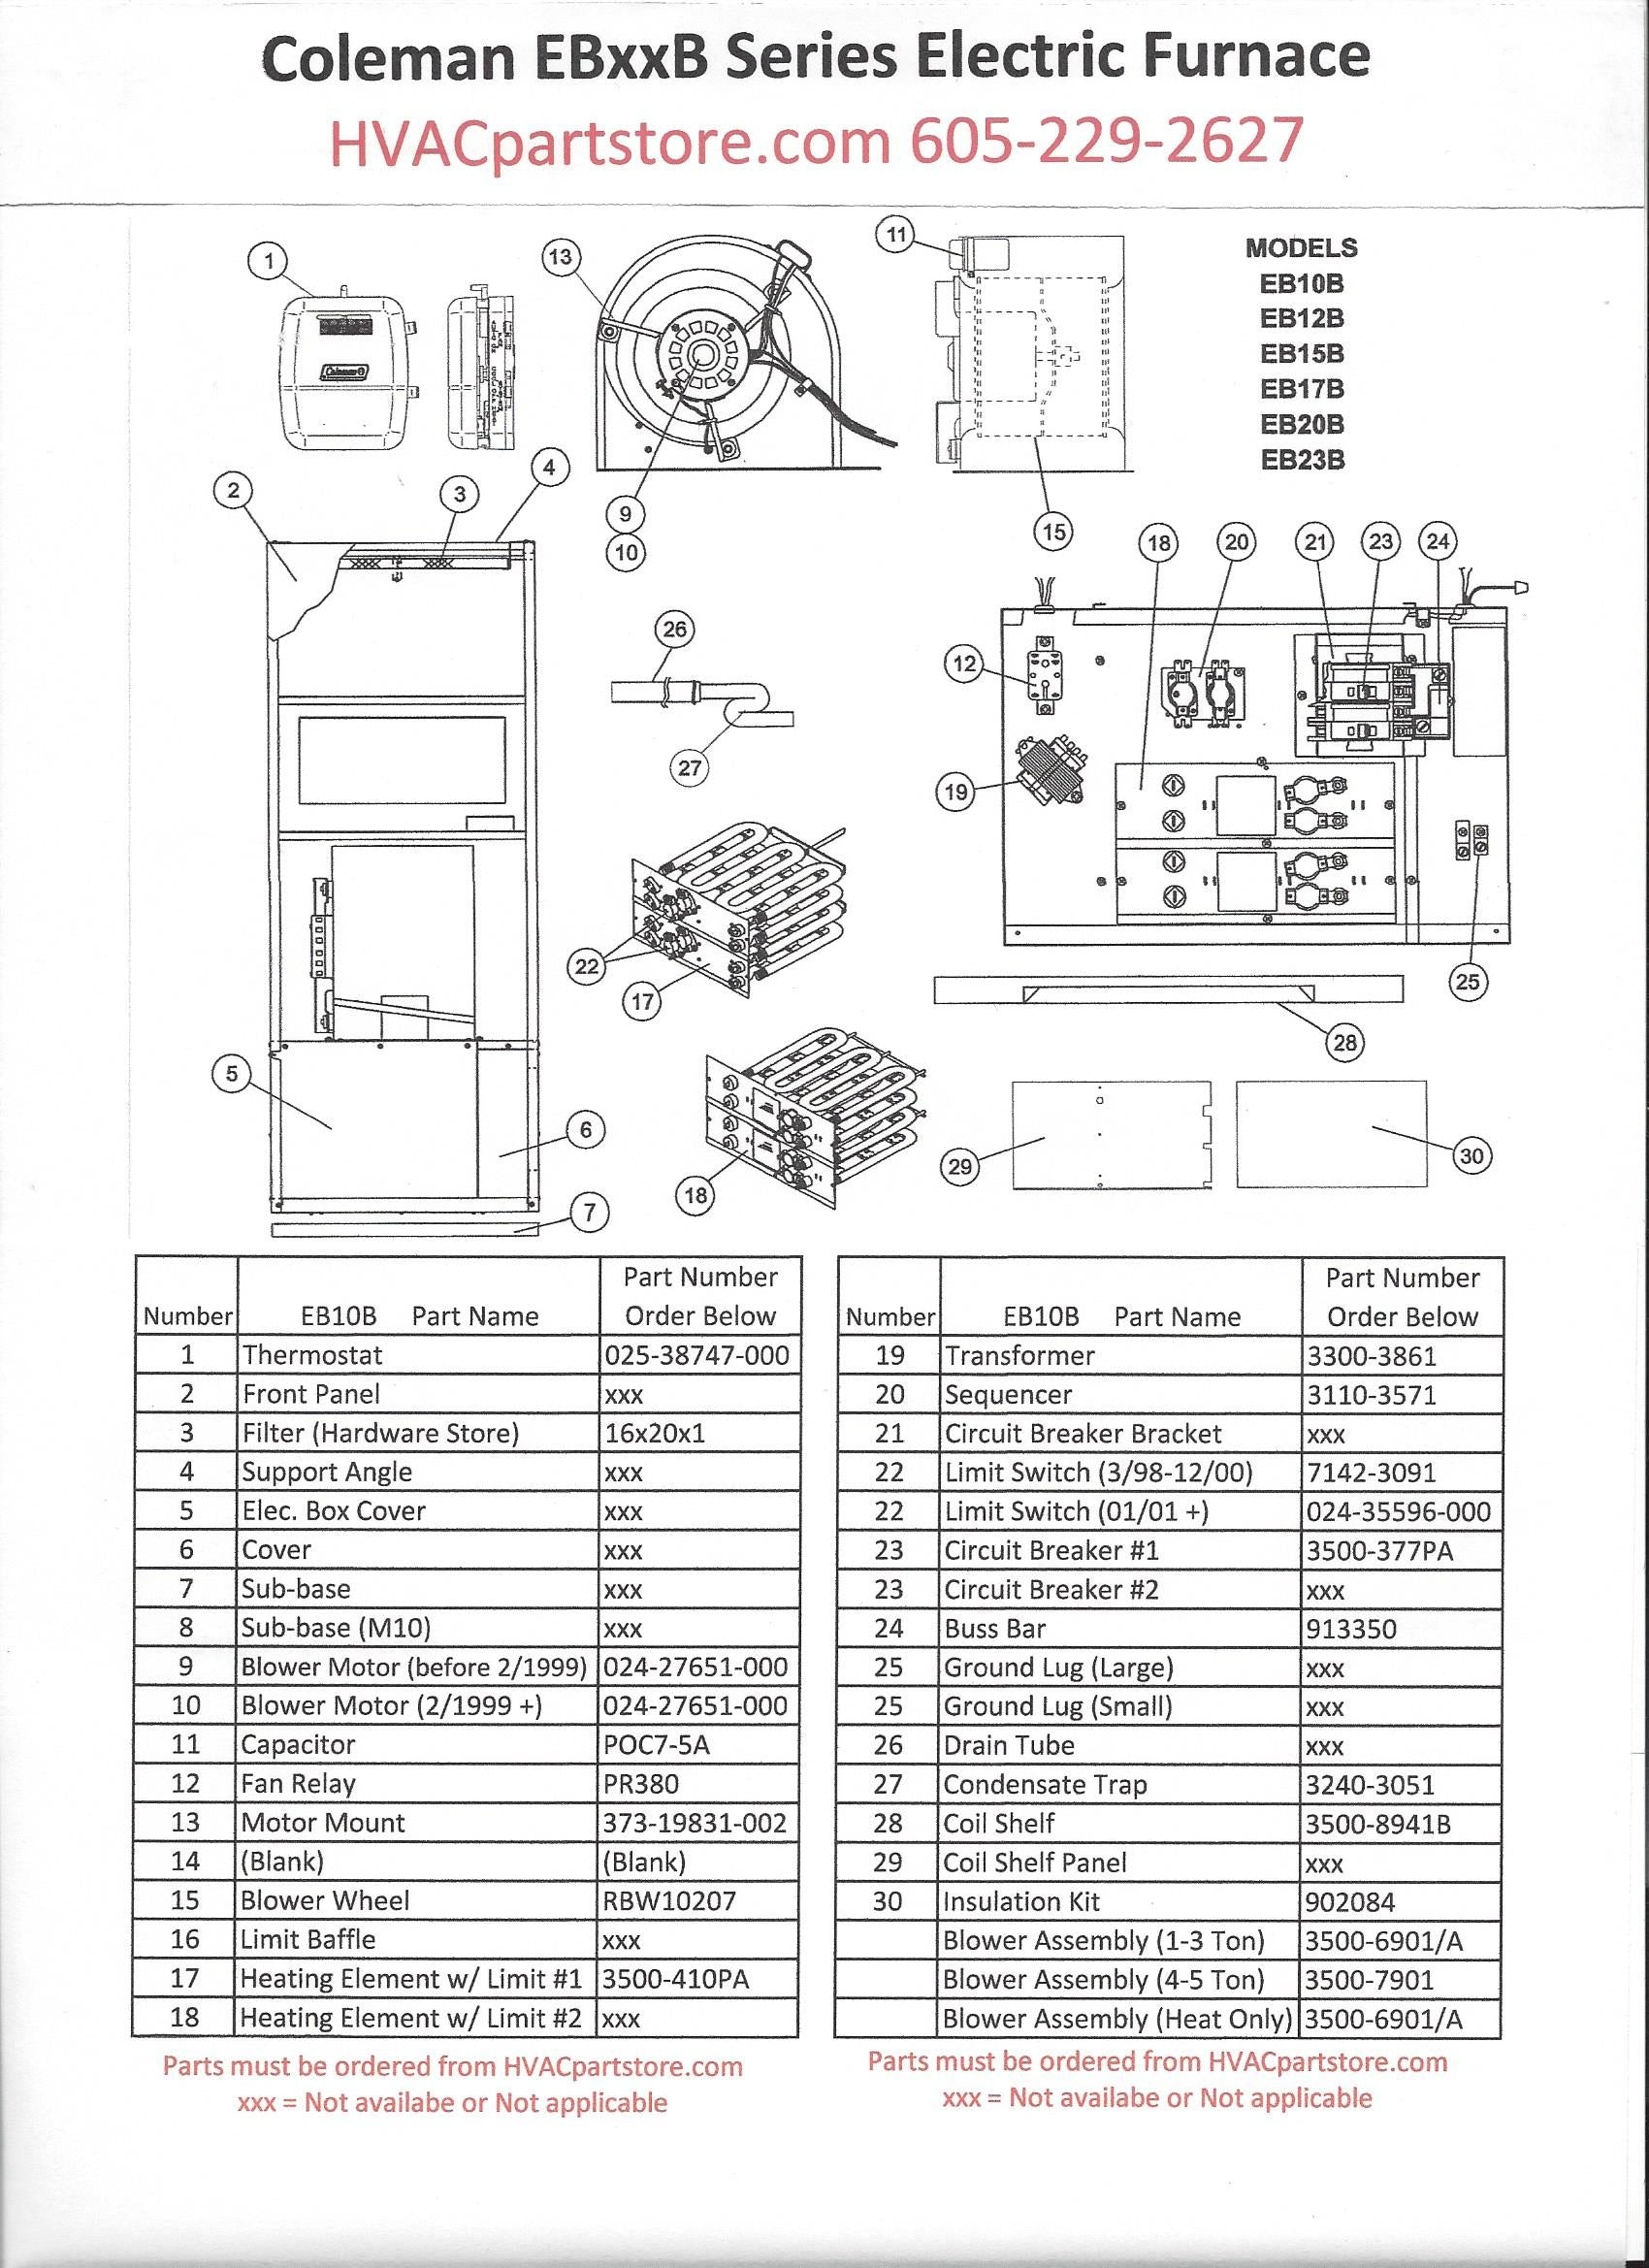 wiring diagram coleman fairlake pop up wiring diagram coleman furnace 7665 856 eb10b coleman electric furnace parts – hvacpartstore #15